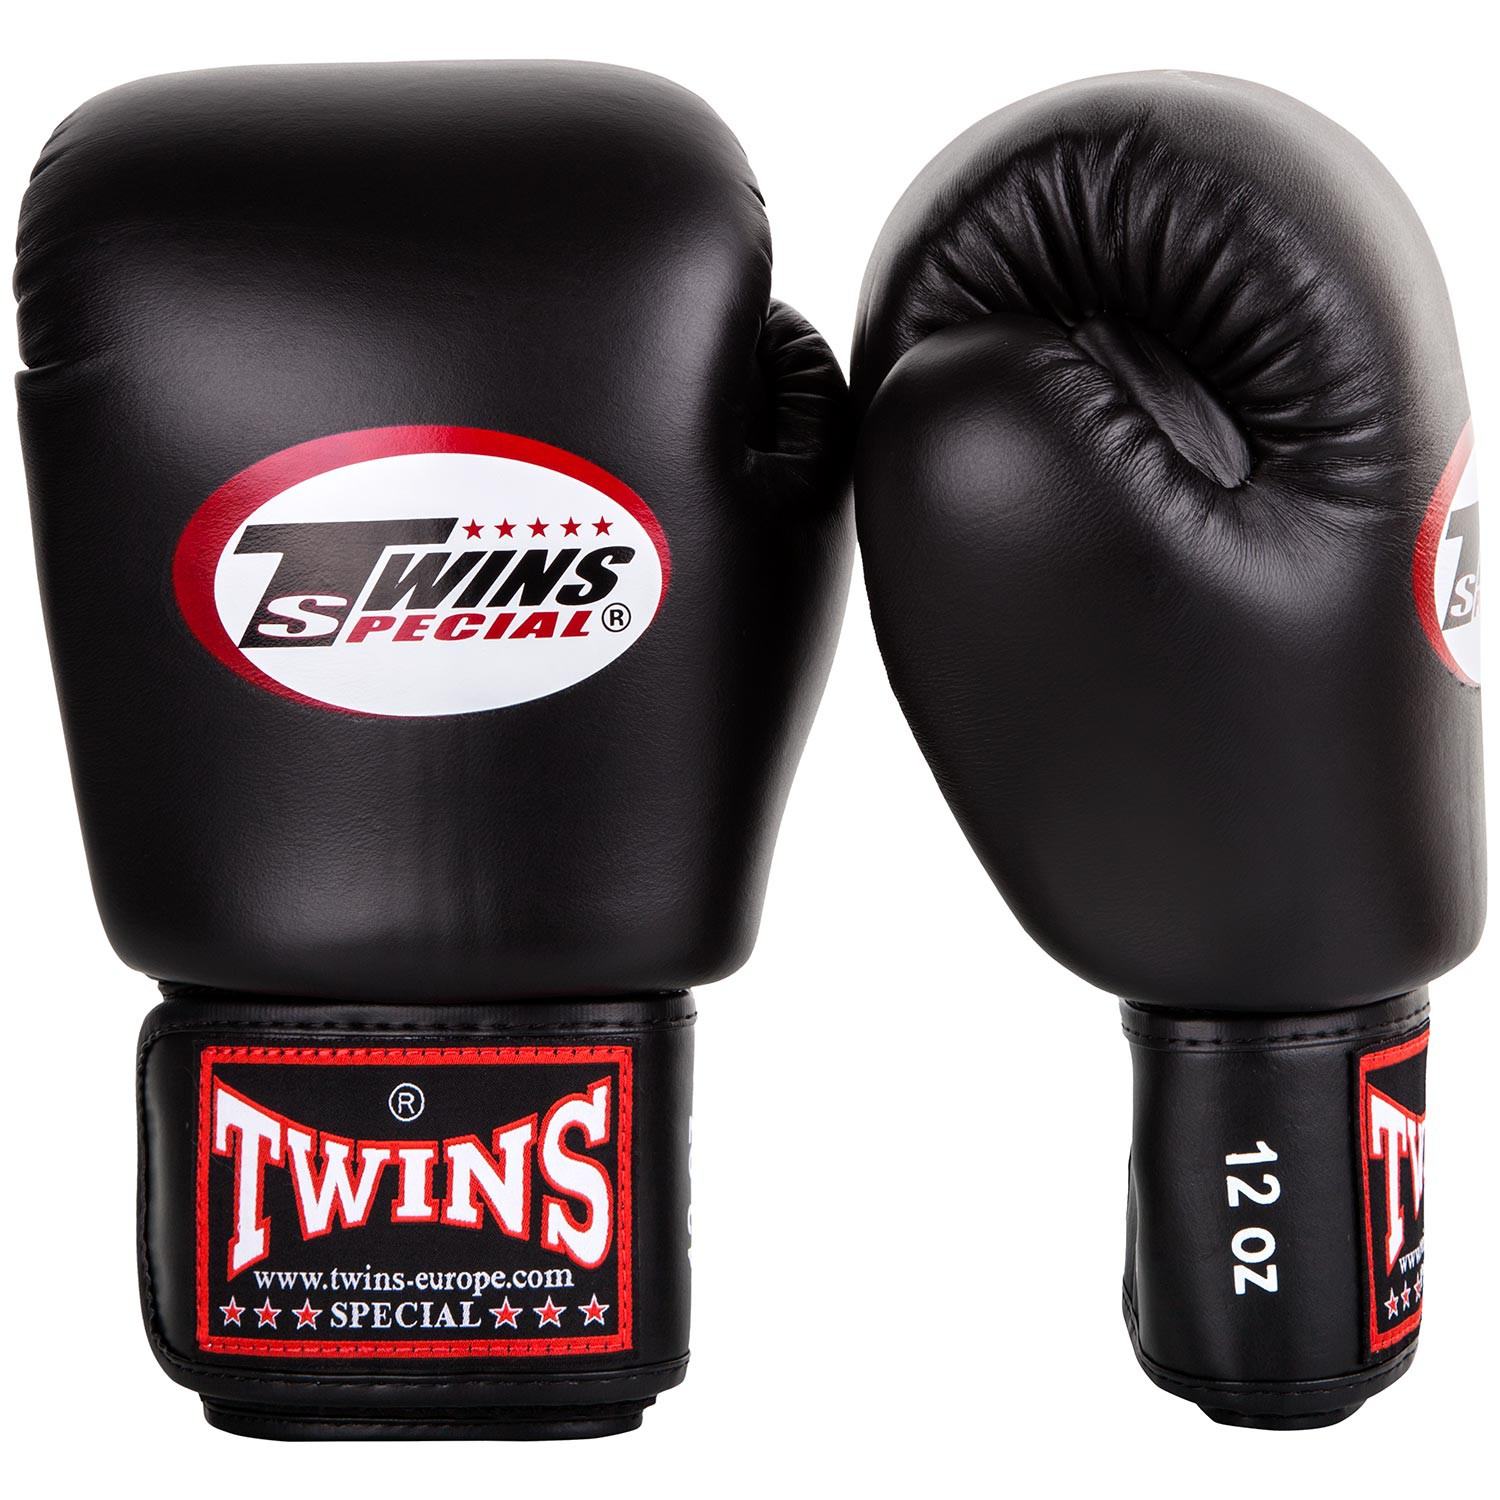 gants de boxe twins noir gants de boxe mma gants de. Black Bedroom Furniture Sets. Home Design Ideas